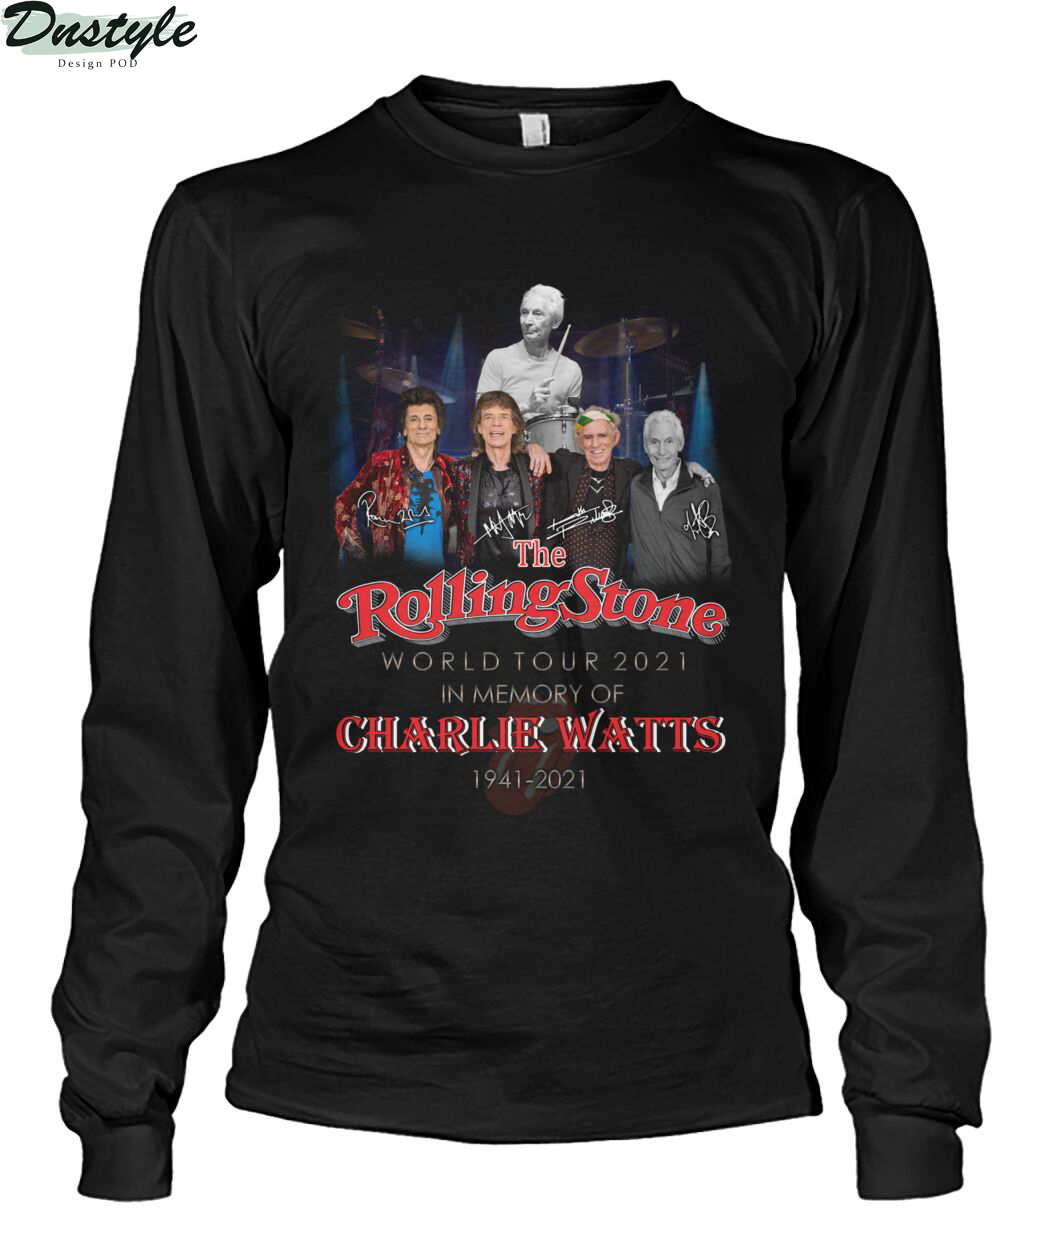 The rolling stone world tour 2021 in memory of Charlie Watts 1941-2021 long sleeve